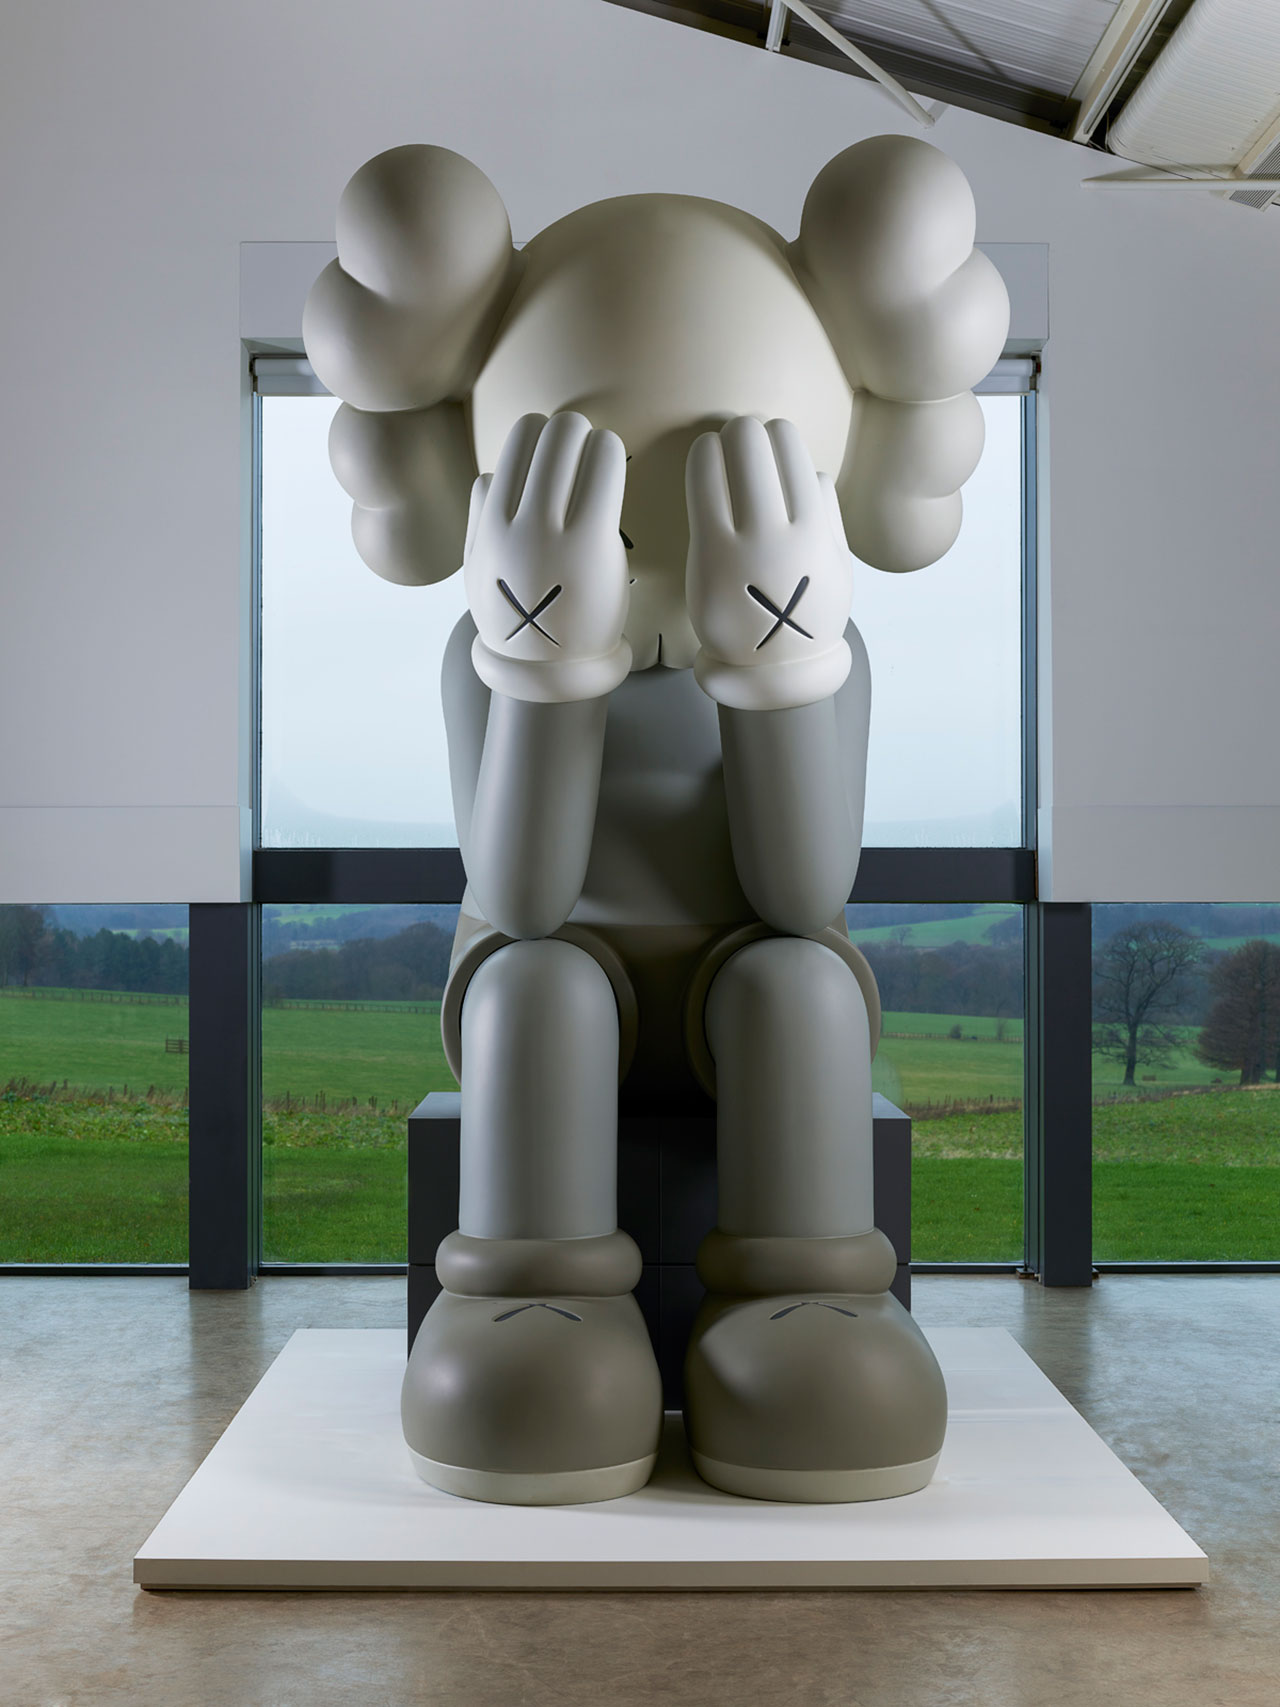 Companion (Passing Through), 2010. Courtesy the artist, YSP and Galerie Perrotin. Collection of Larry Warsh. Fibreglass, metal structure, paint. H487.68cm W288.3cm. Photo © Jonty Wilde.